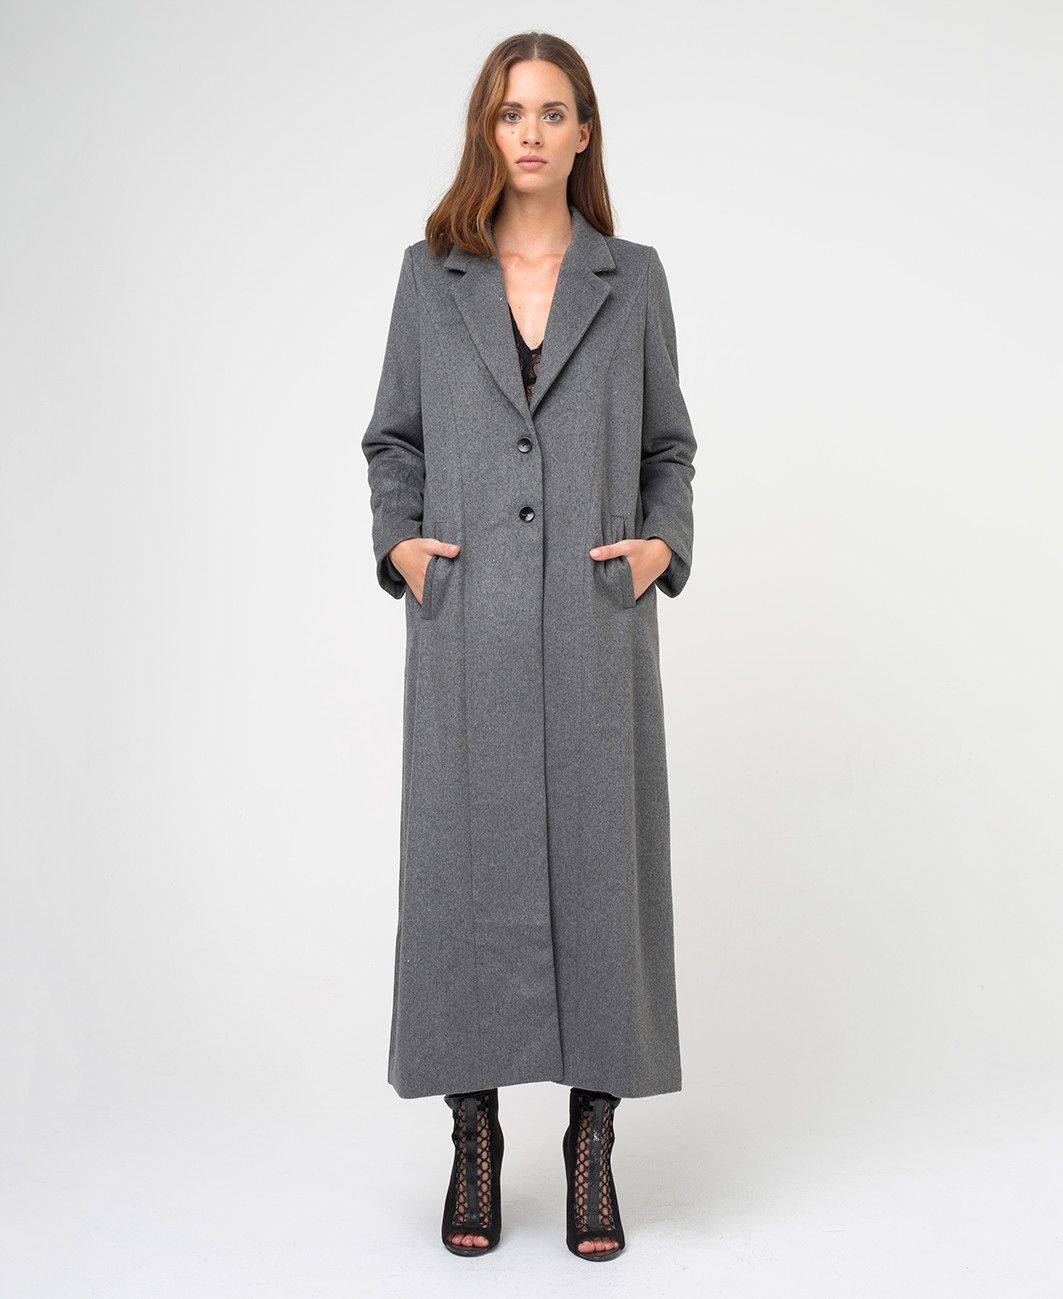 PROGRESSION COAT - GREY - Outerwear - Clothing - Womens